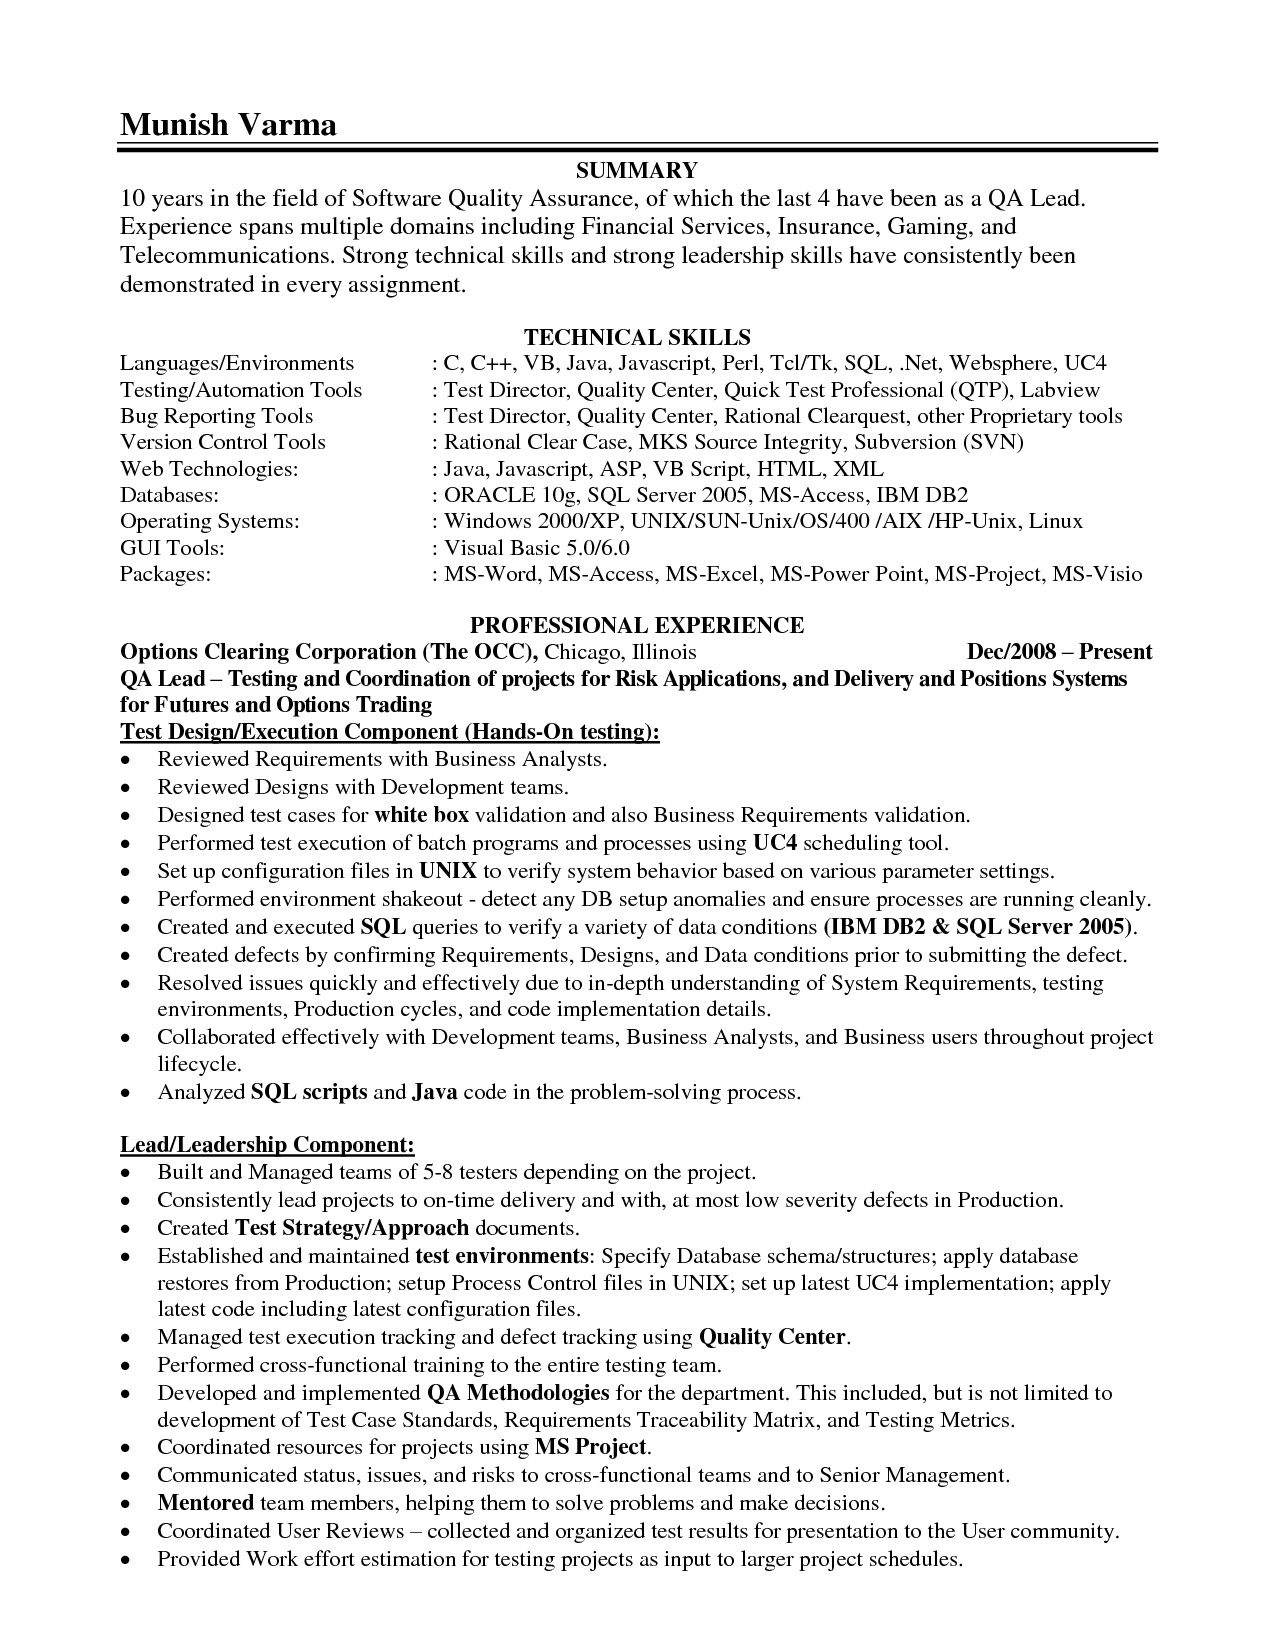 Resume Leadership Skills Examples 7 How To Describe Leadership Skills On Resume  Resume How To List .  Skill Resume Examples